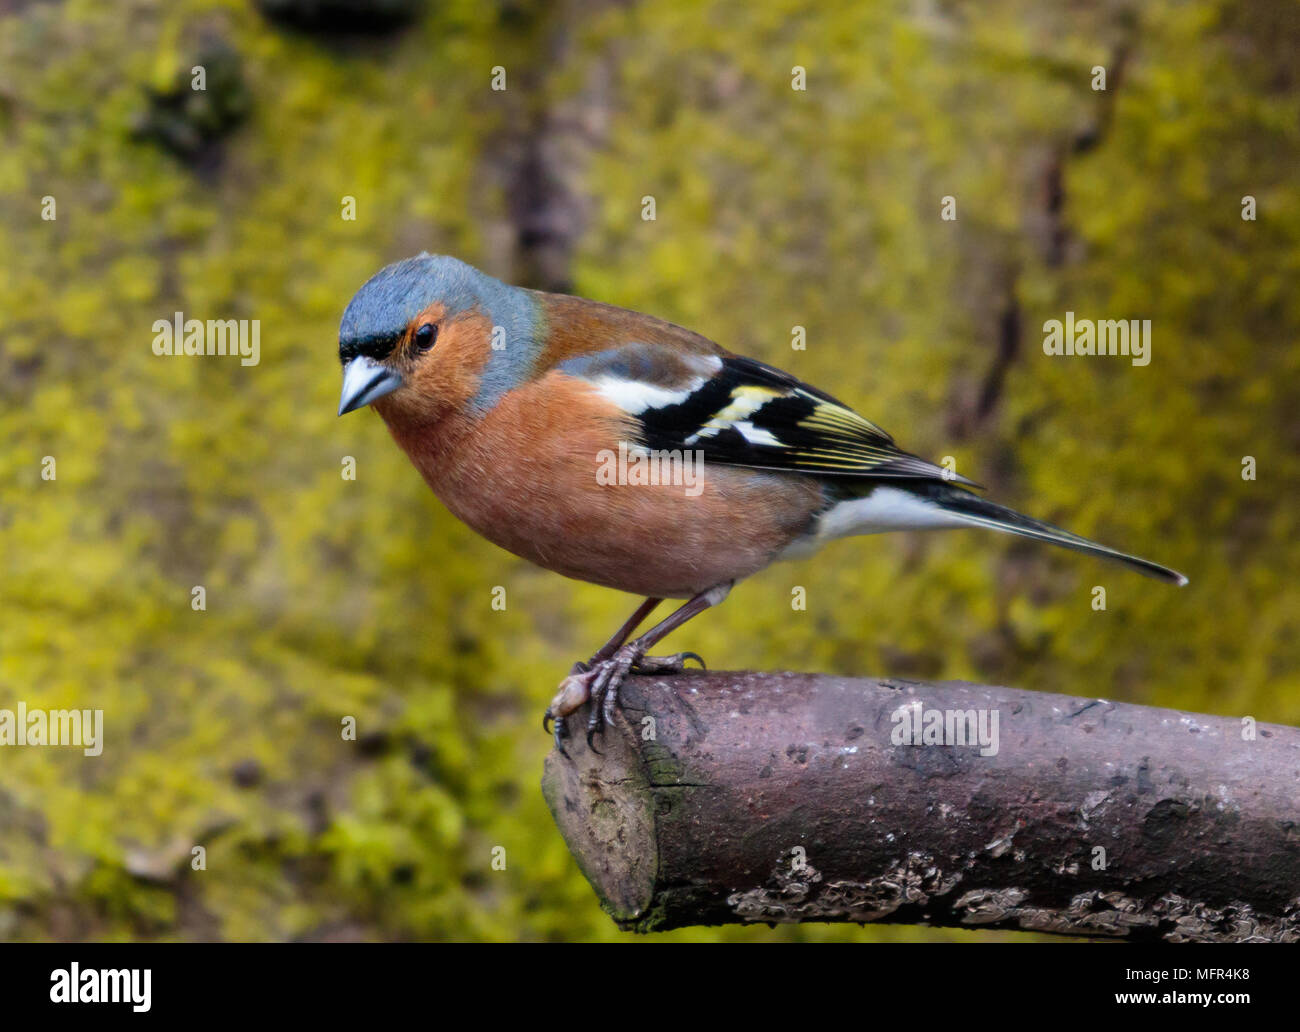 Chaffinch Male - Stock Image